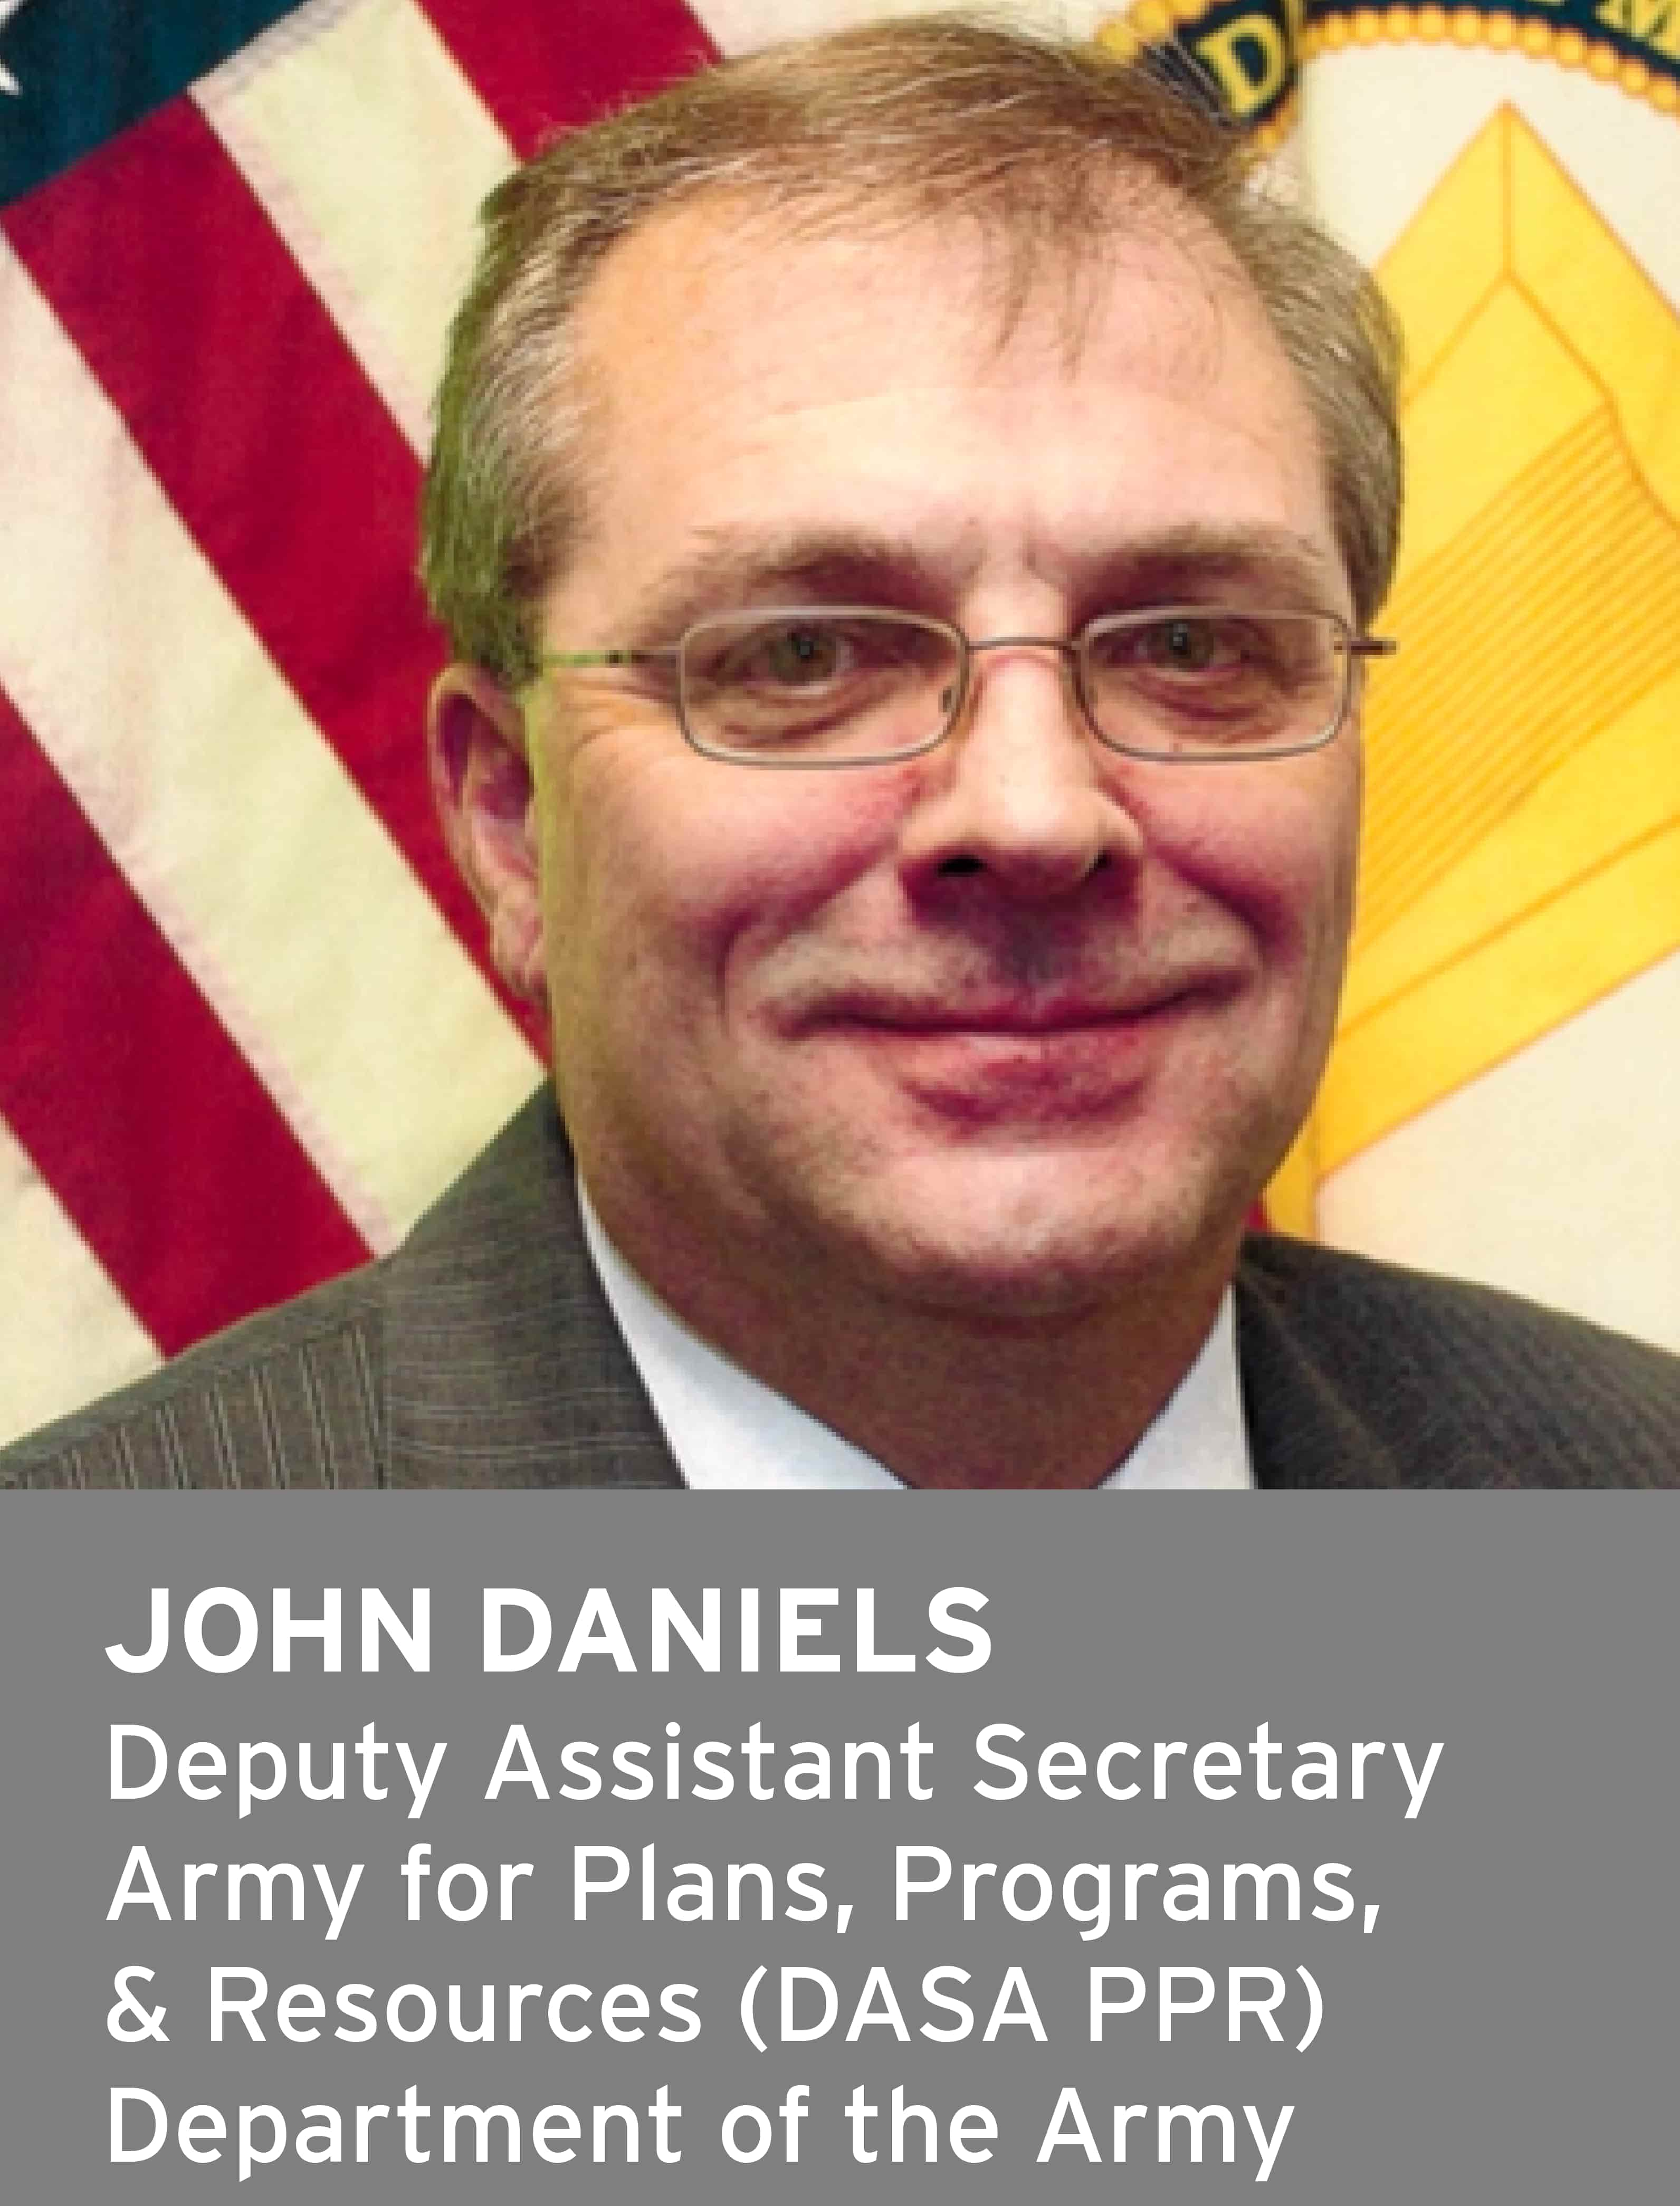 John Daniels, Deputy Assistant Secretary, Army for Plans, Programs and Resources (DASA PPR), Department of the Navy